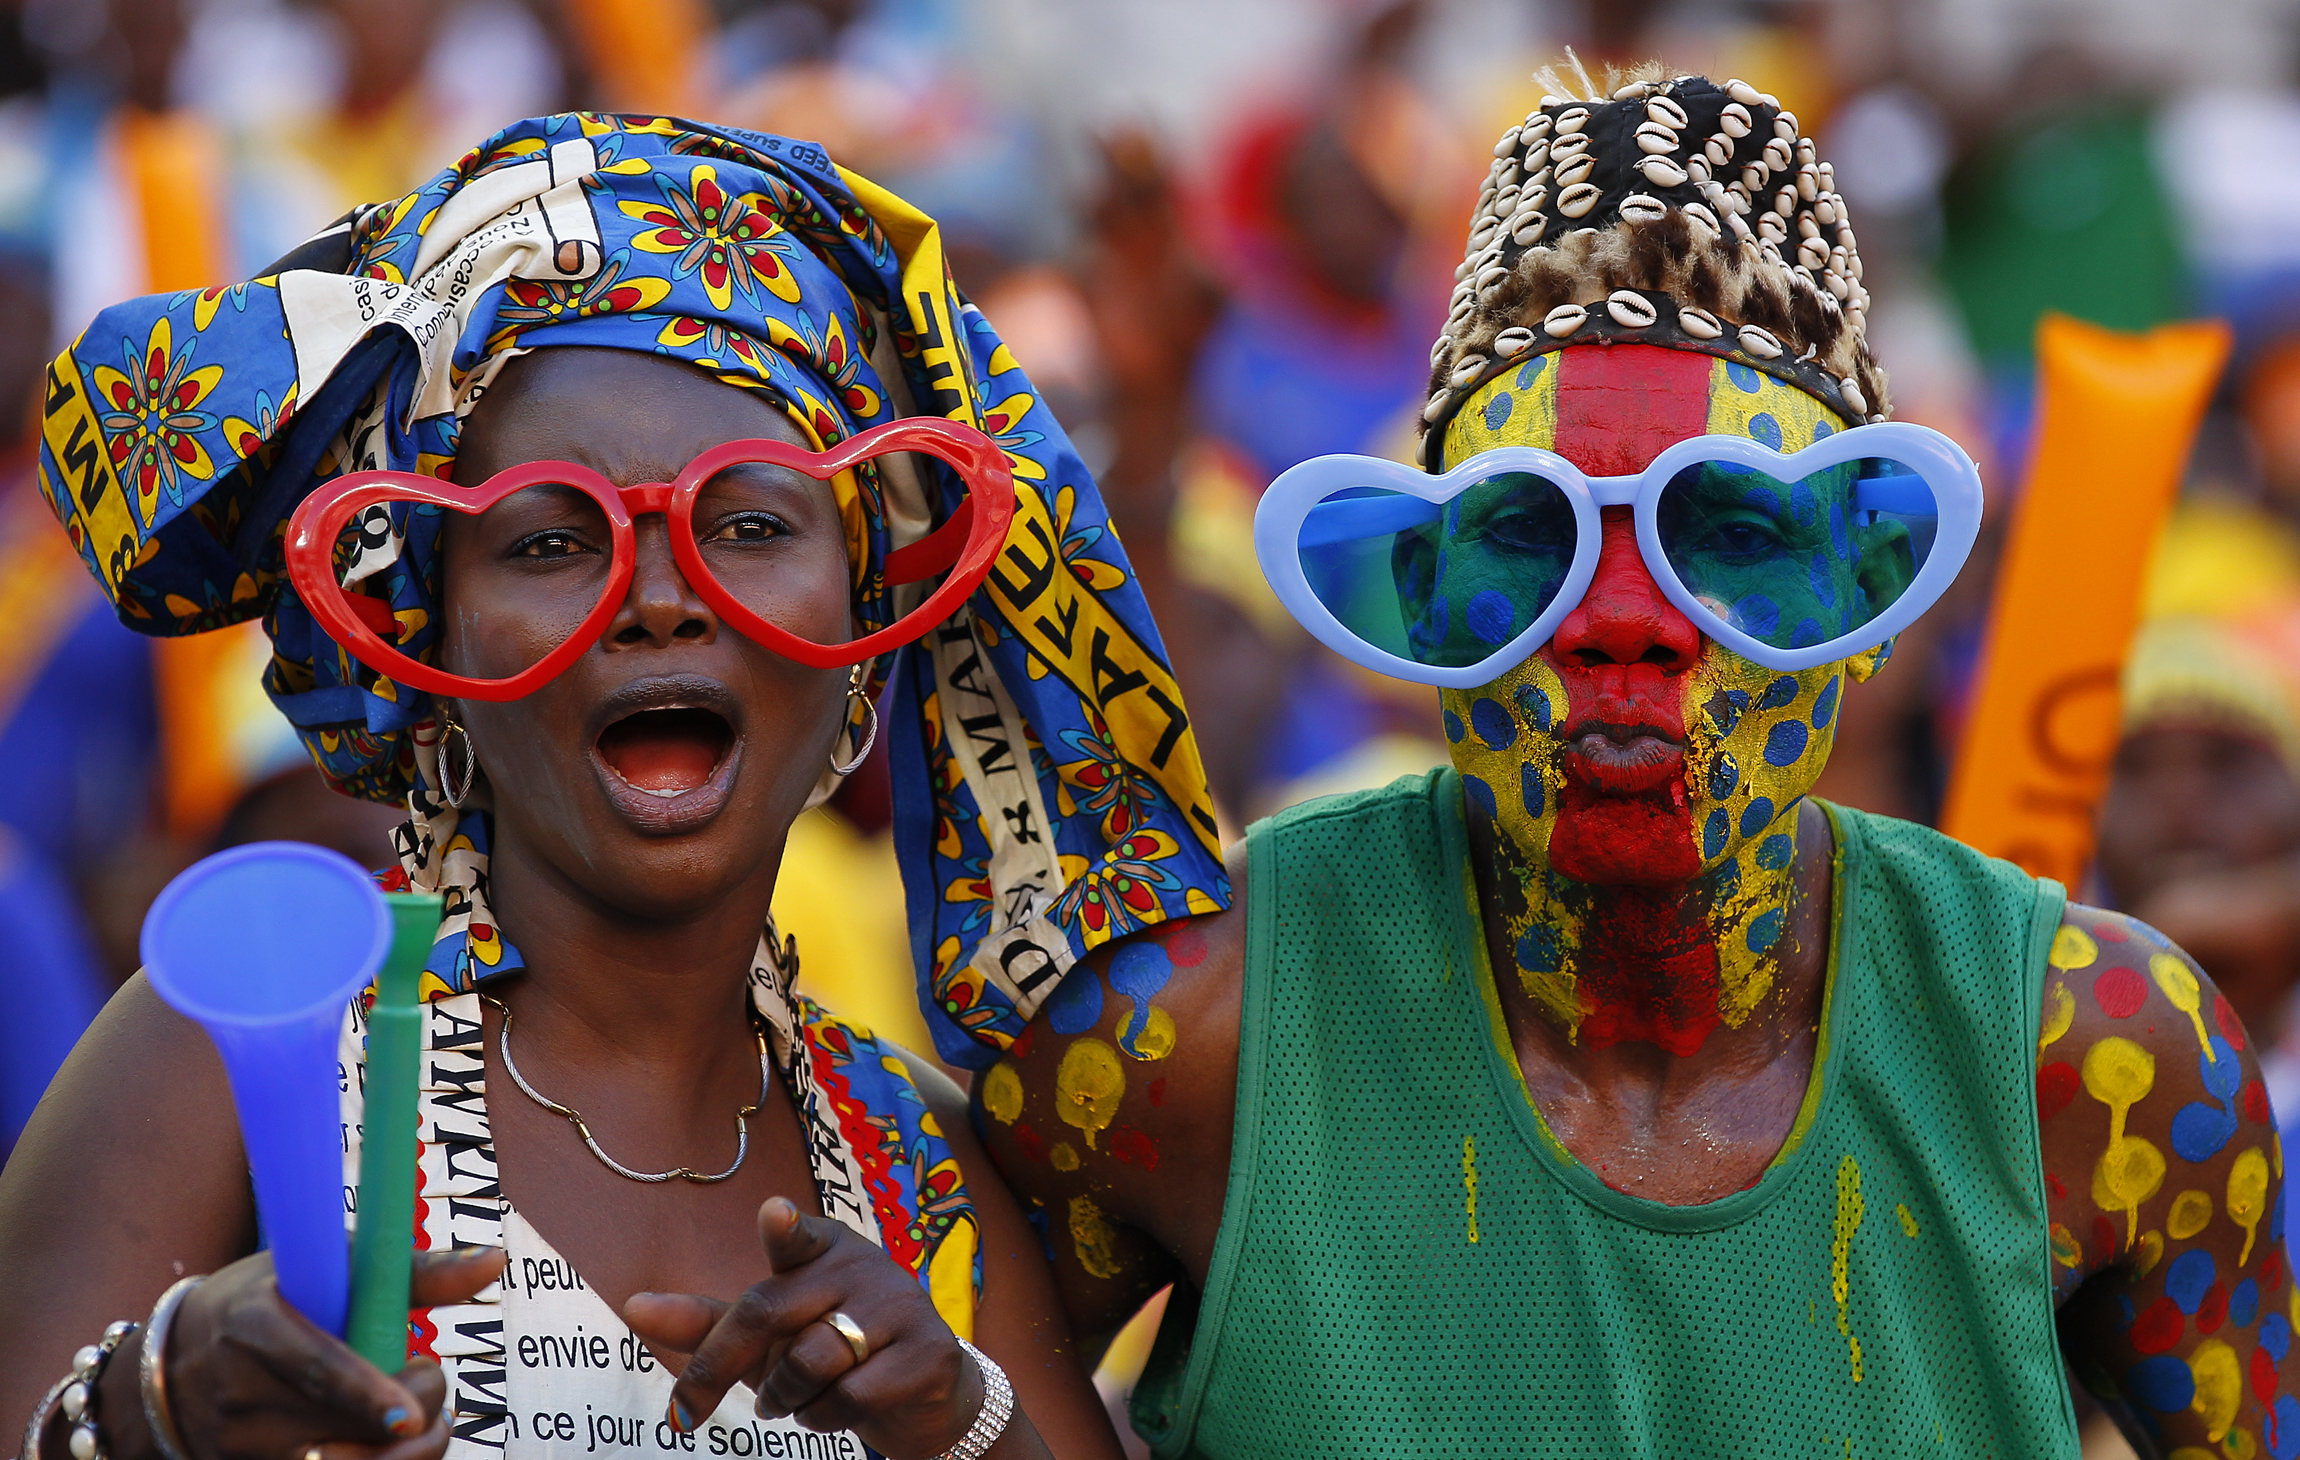 http://blogs.voanews.com/sonny/files/2013/02/DRC-fans_AFCON2013.jpg